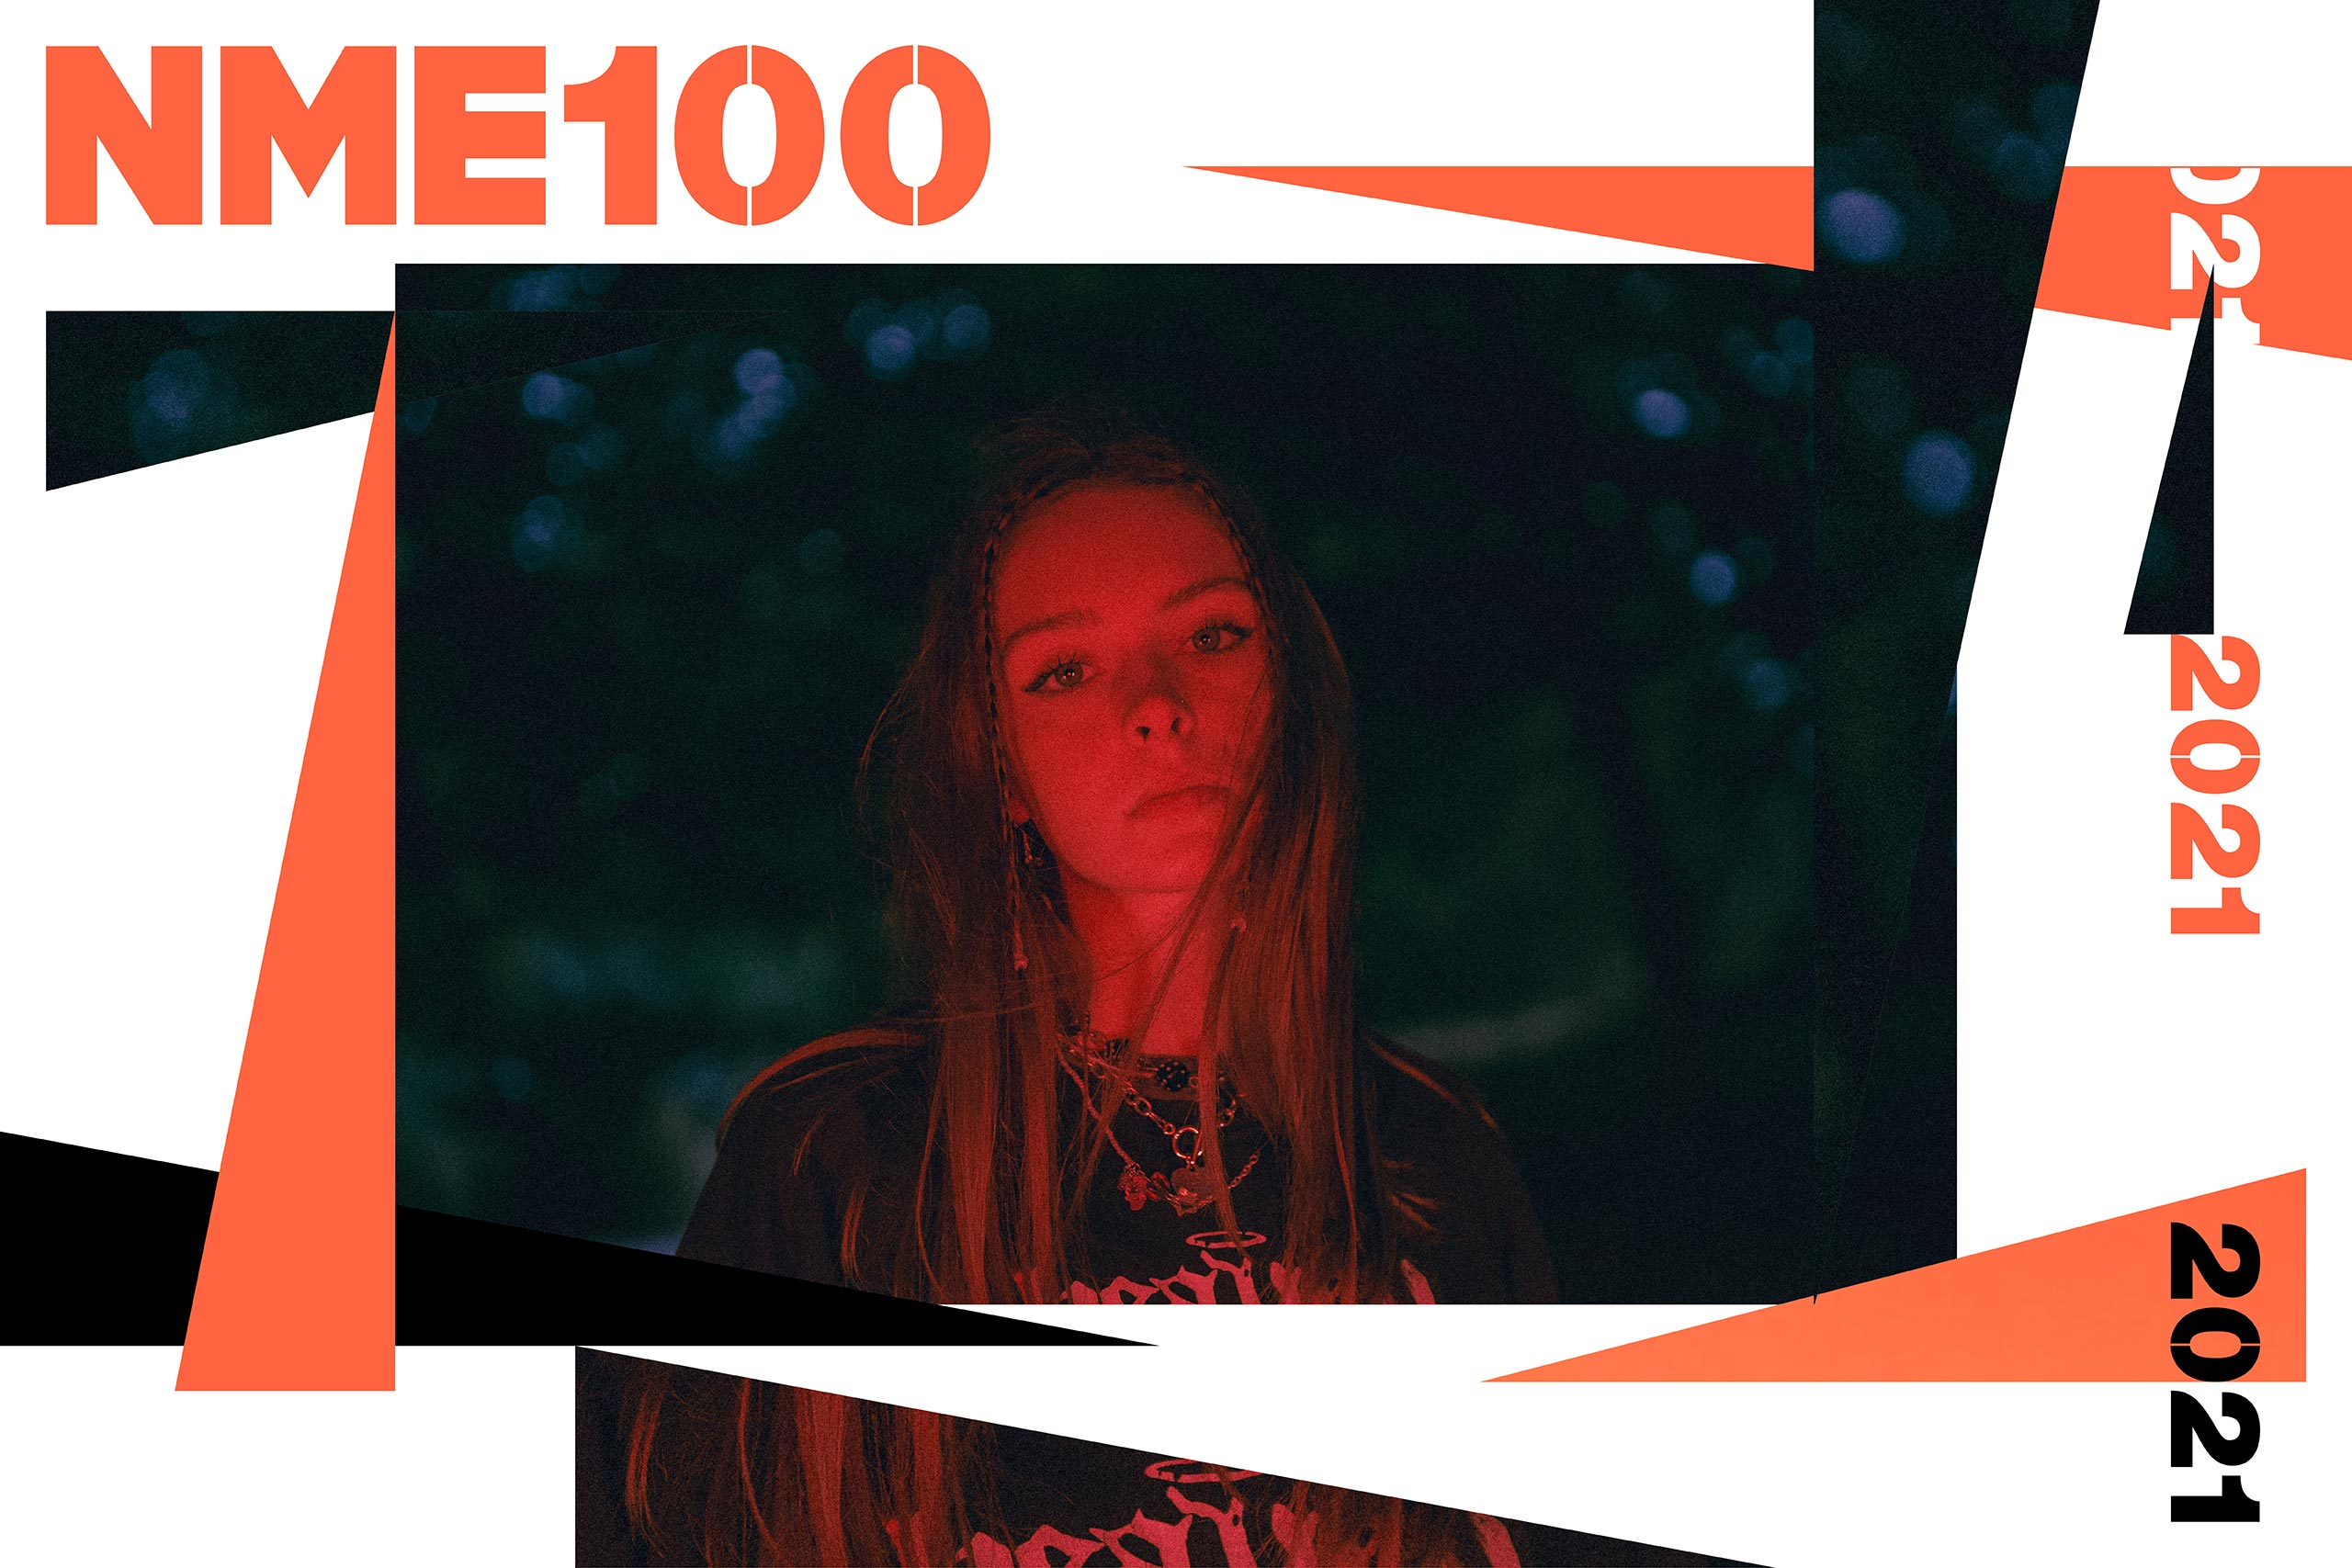 NME 100 holly humberstone